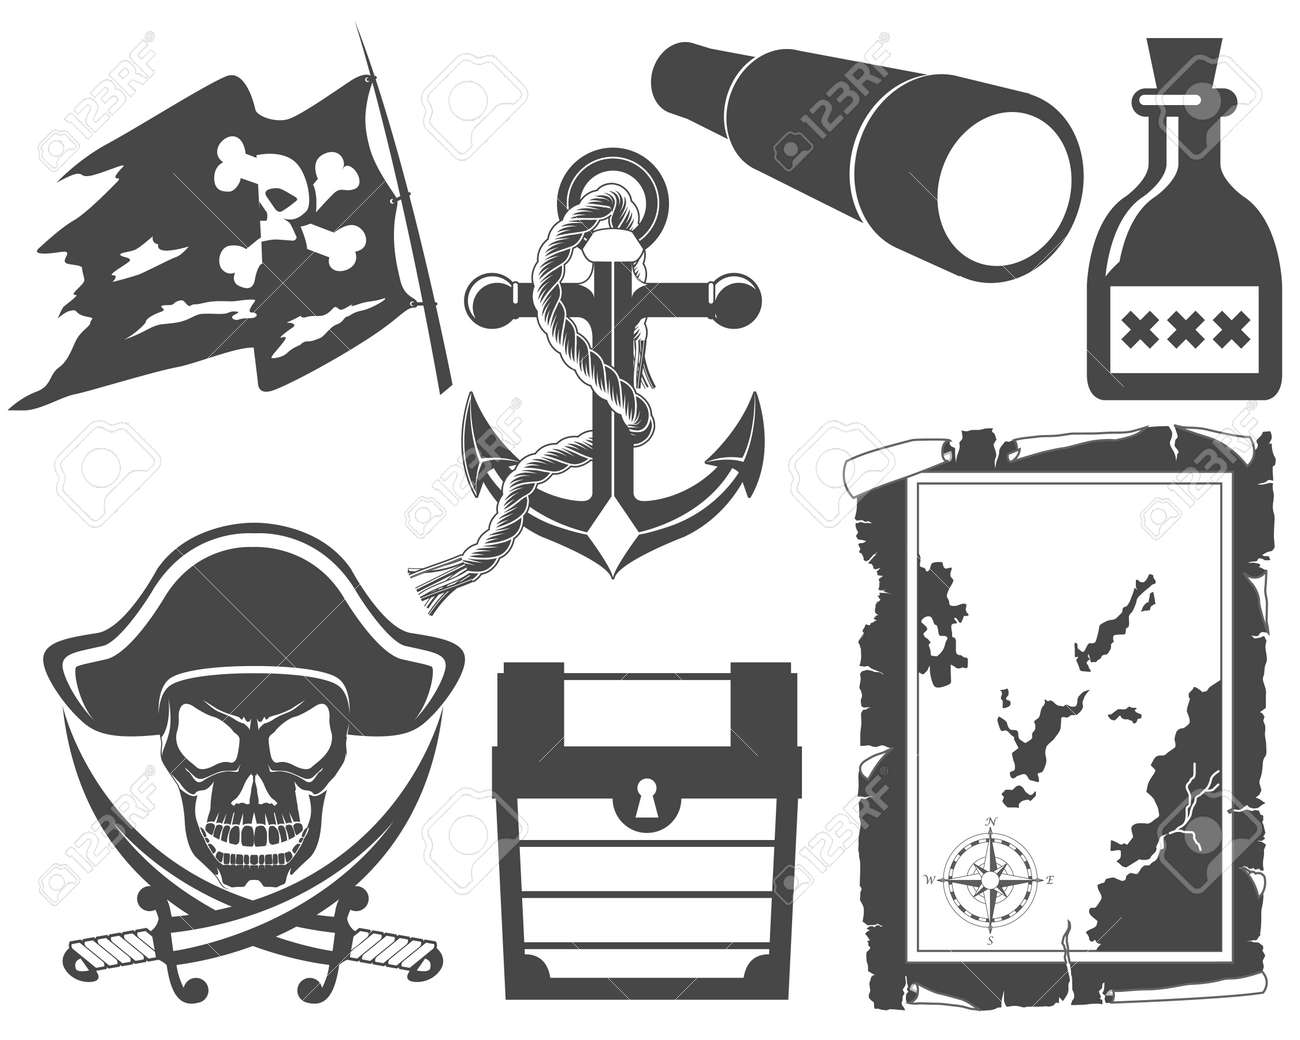 6 195 treasure chest stock vector illustration and royalty free